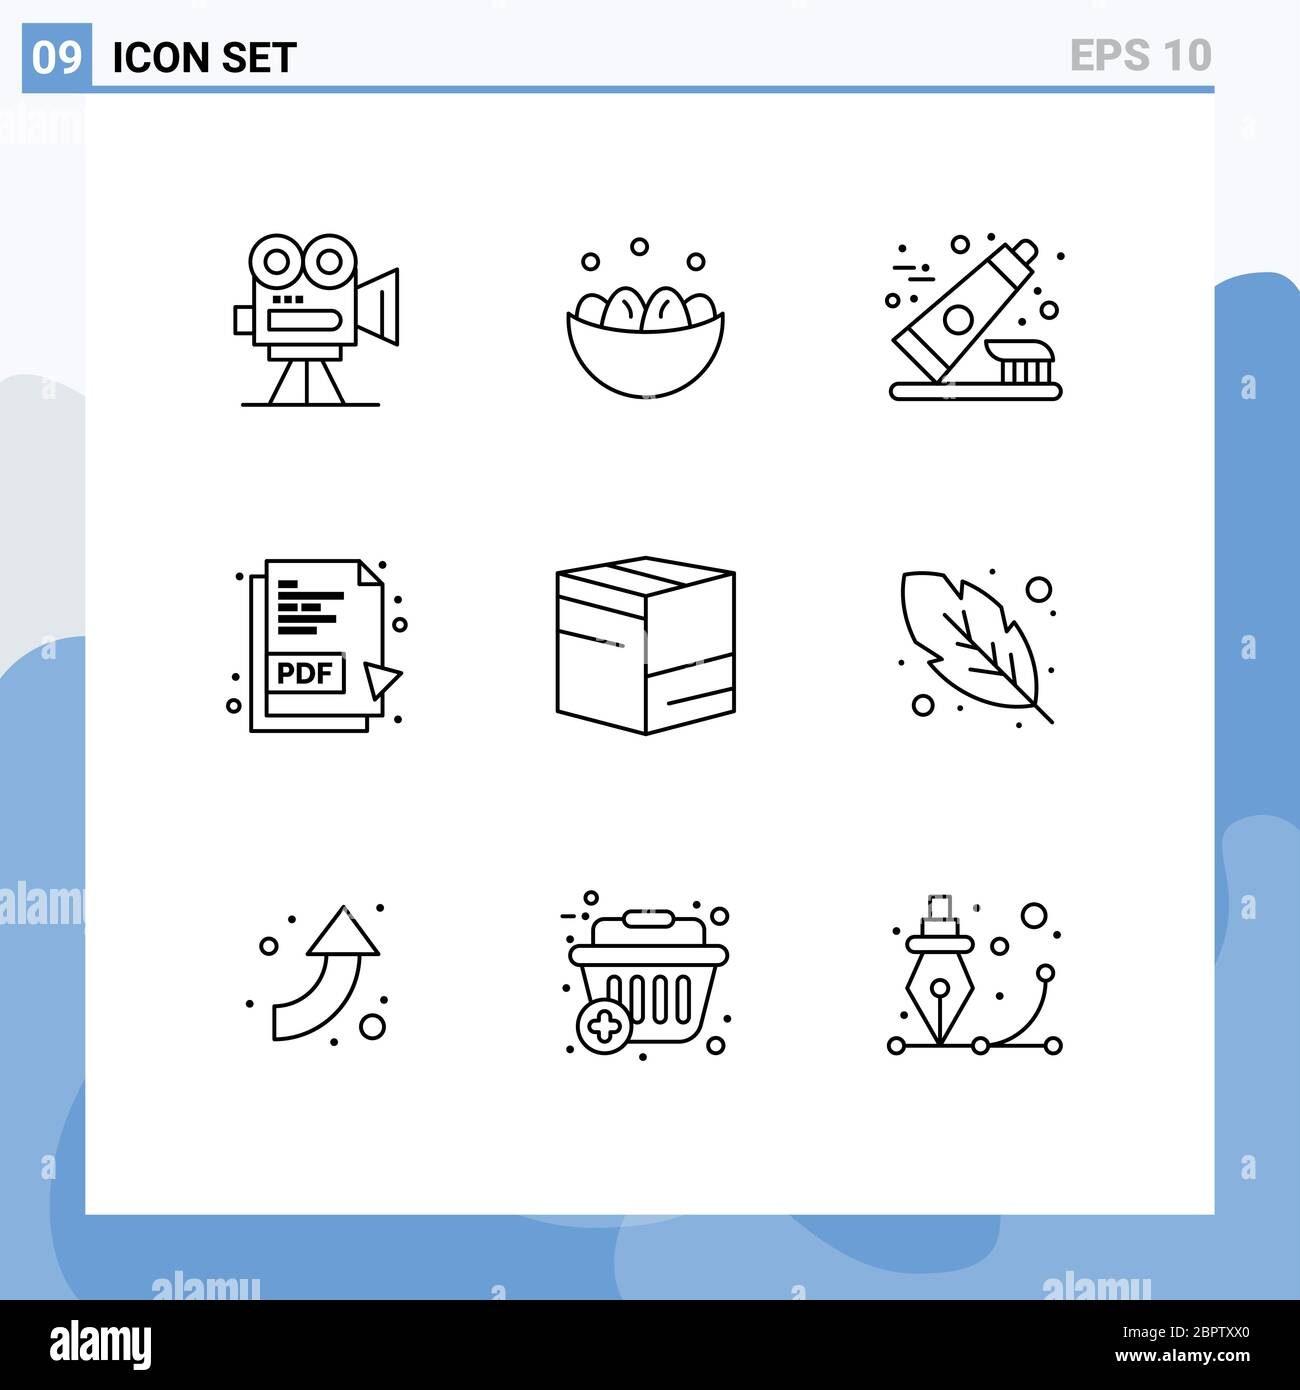 Outline Pack Of 9 Universal Symbols Of Box Pdf Document Egg Pdf Toothpaste Editable Vector Design Elements Stock Vector Image Art Alamy